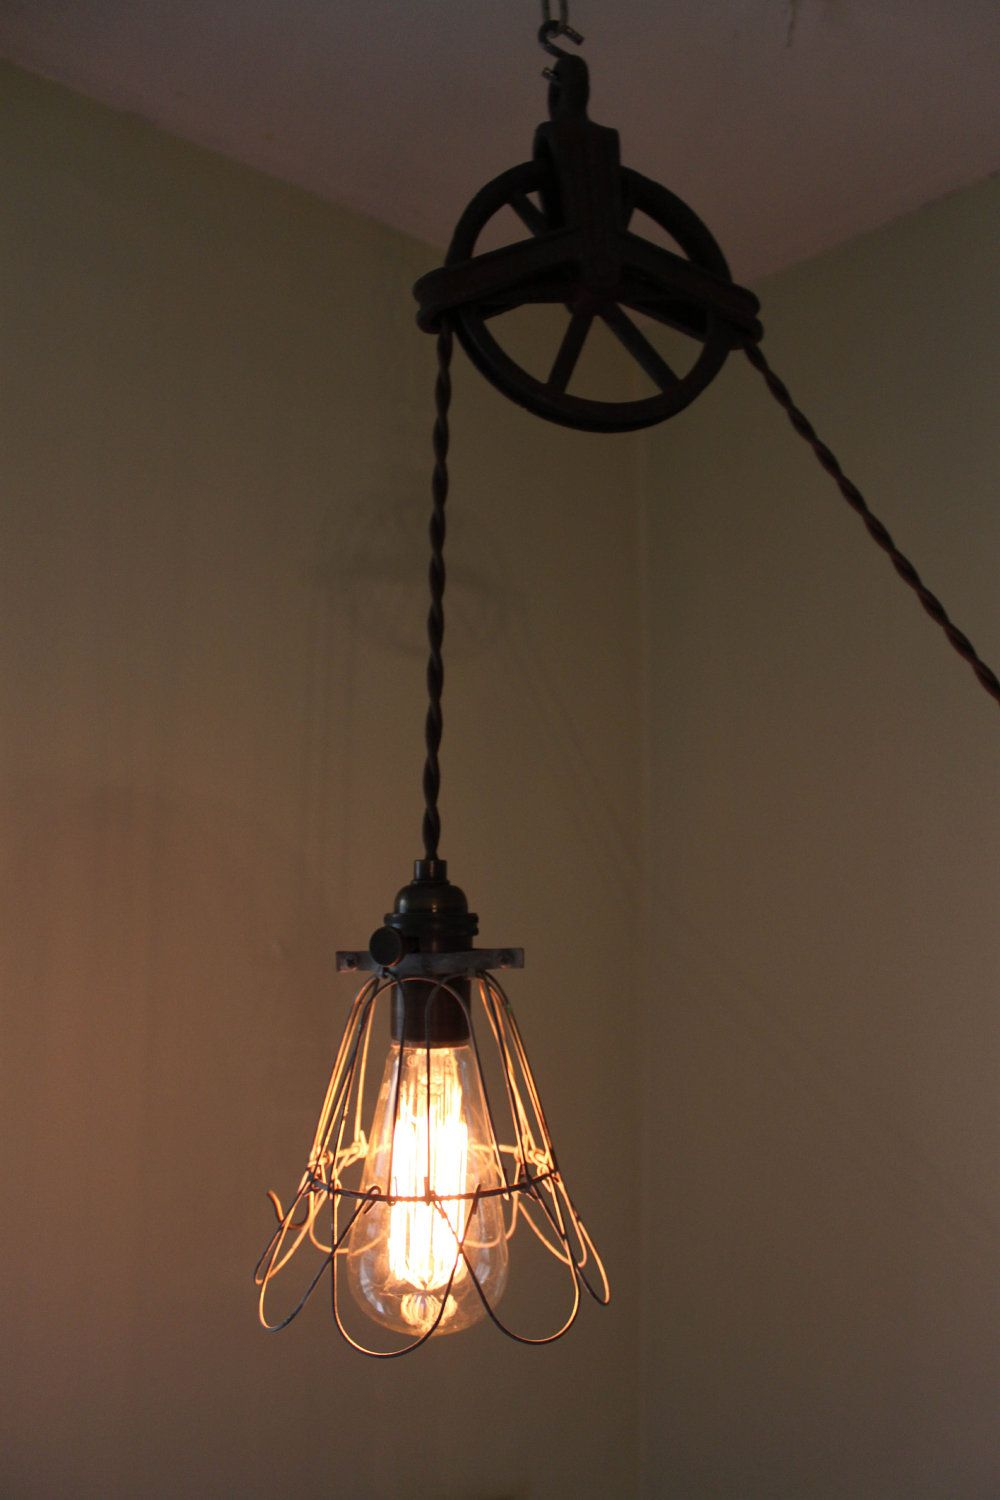 Antique Pulley Wheel Lamp With Cage Cover By Monroetrades On